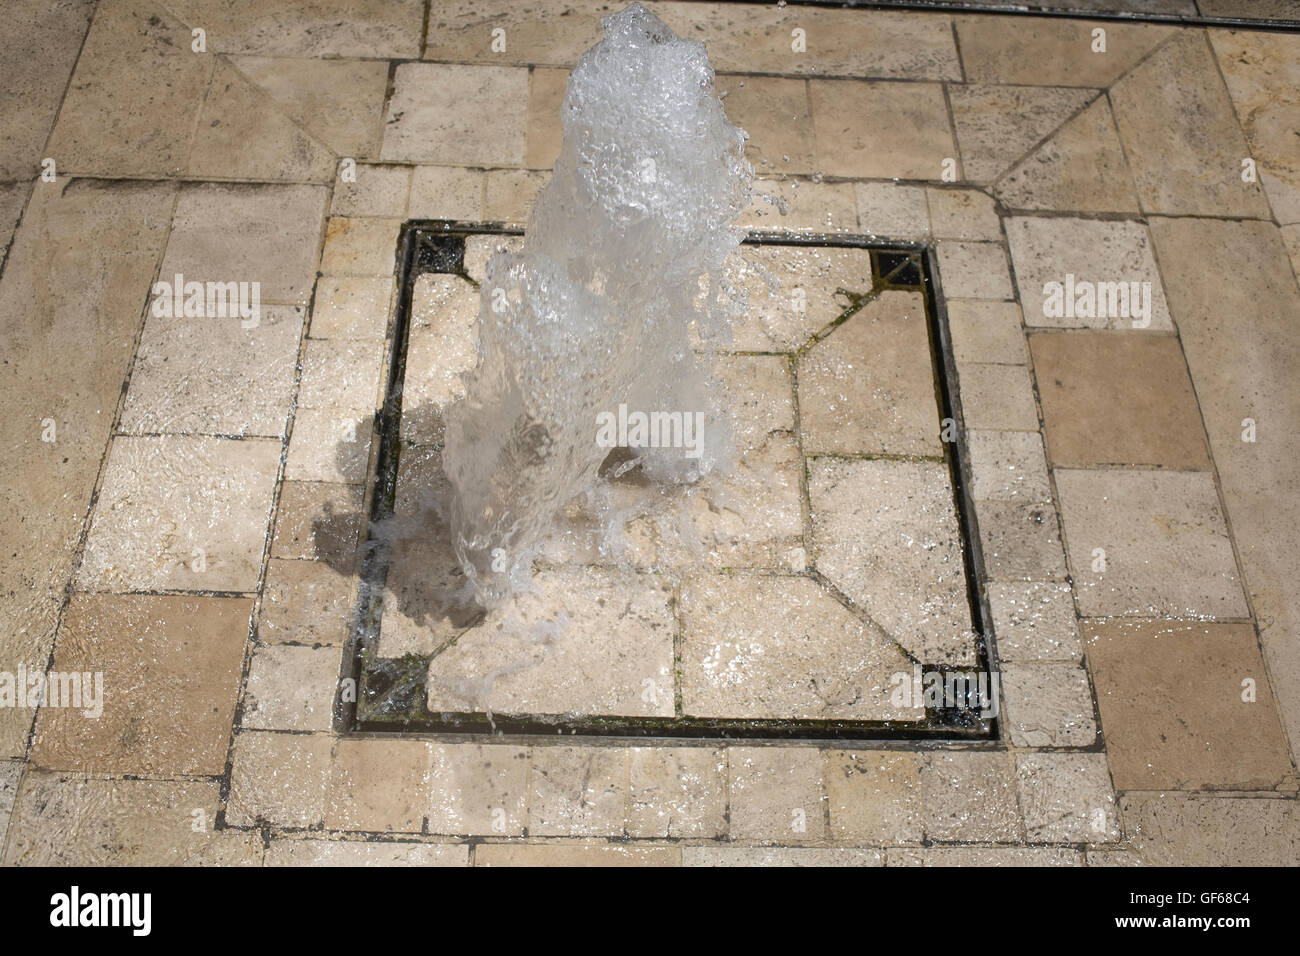 water gushing out of drain cover on hot summer day in city centre - Stock Image